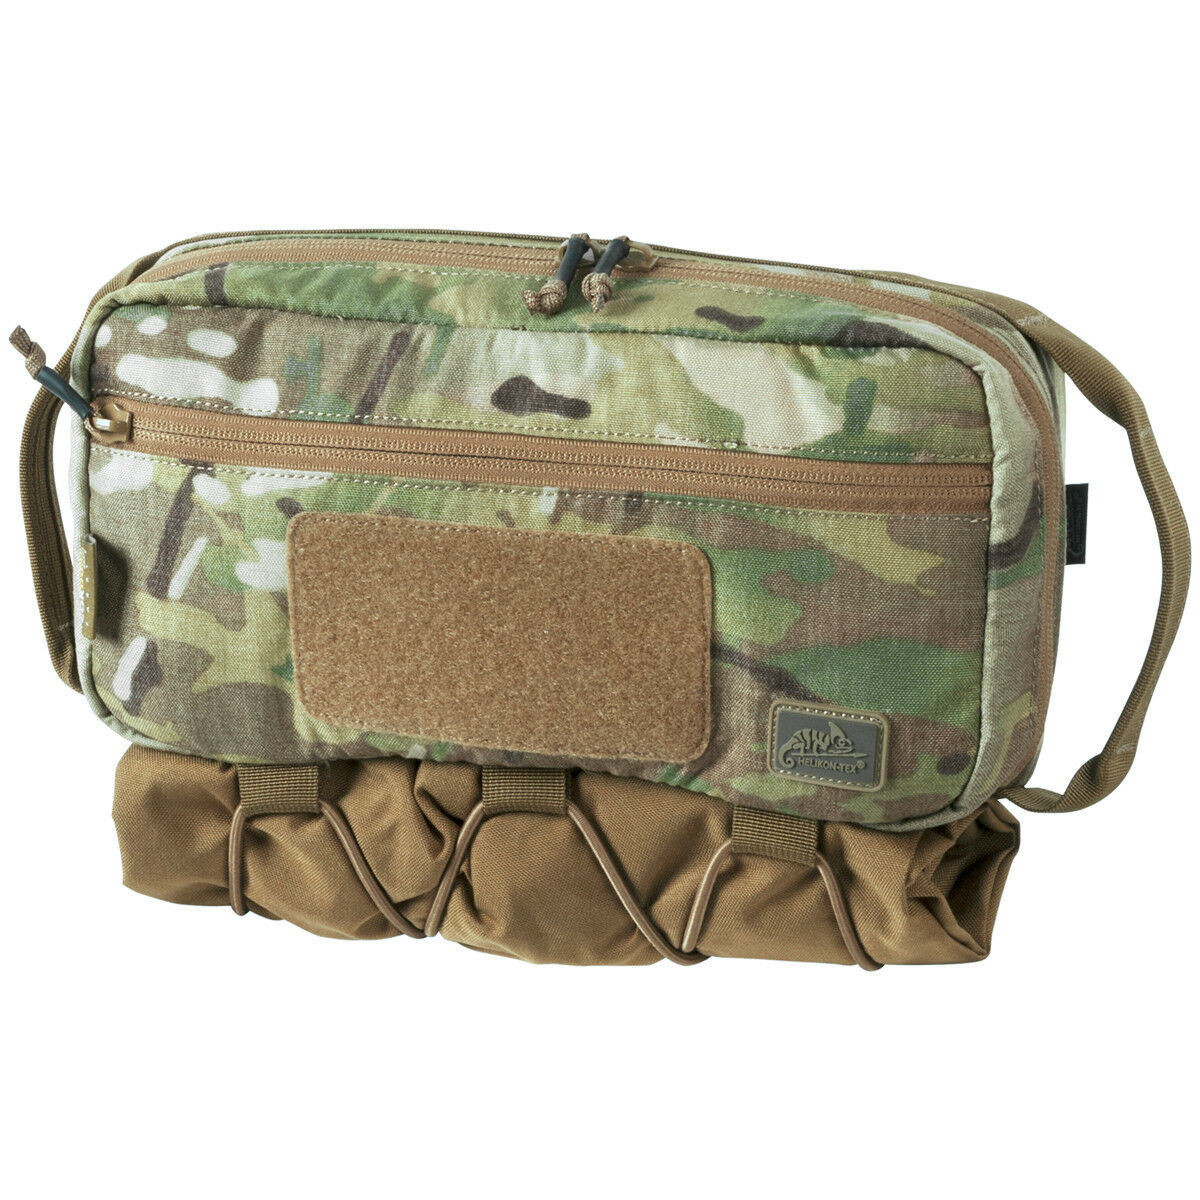 Helikon Service Case Tool Maintenance Bag Cleaning Supplies Holder MultiCam Camo